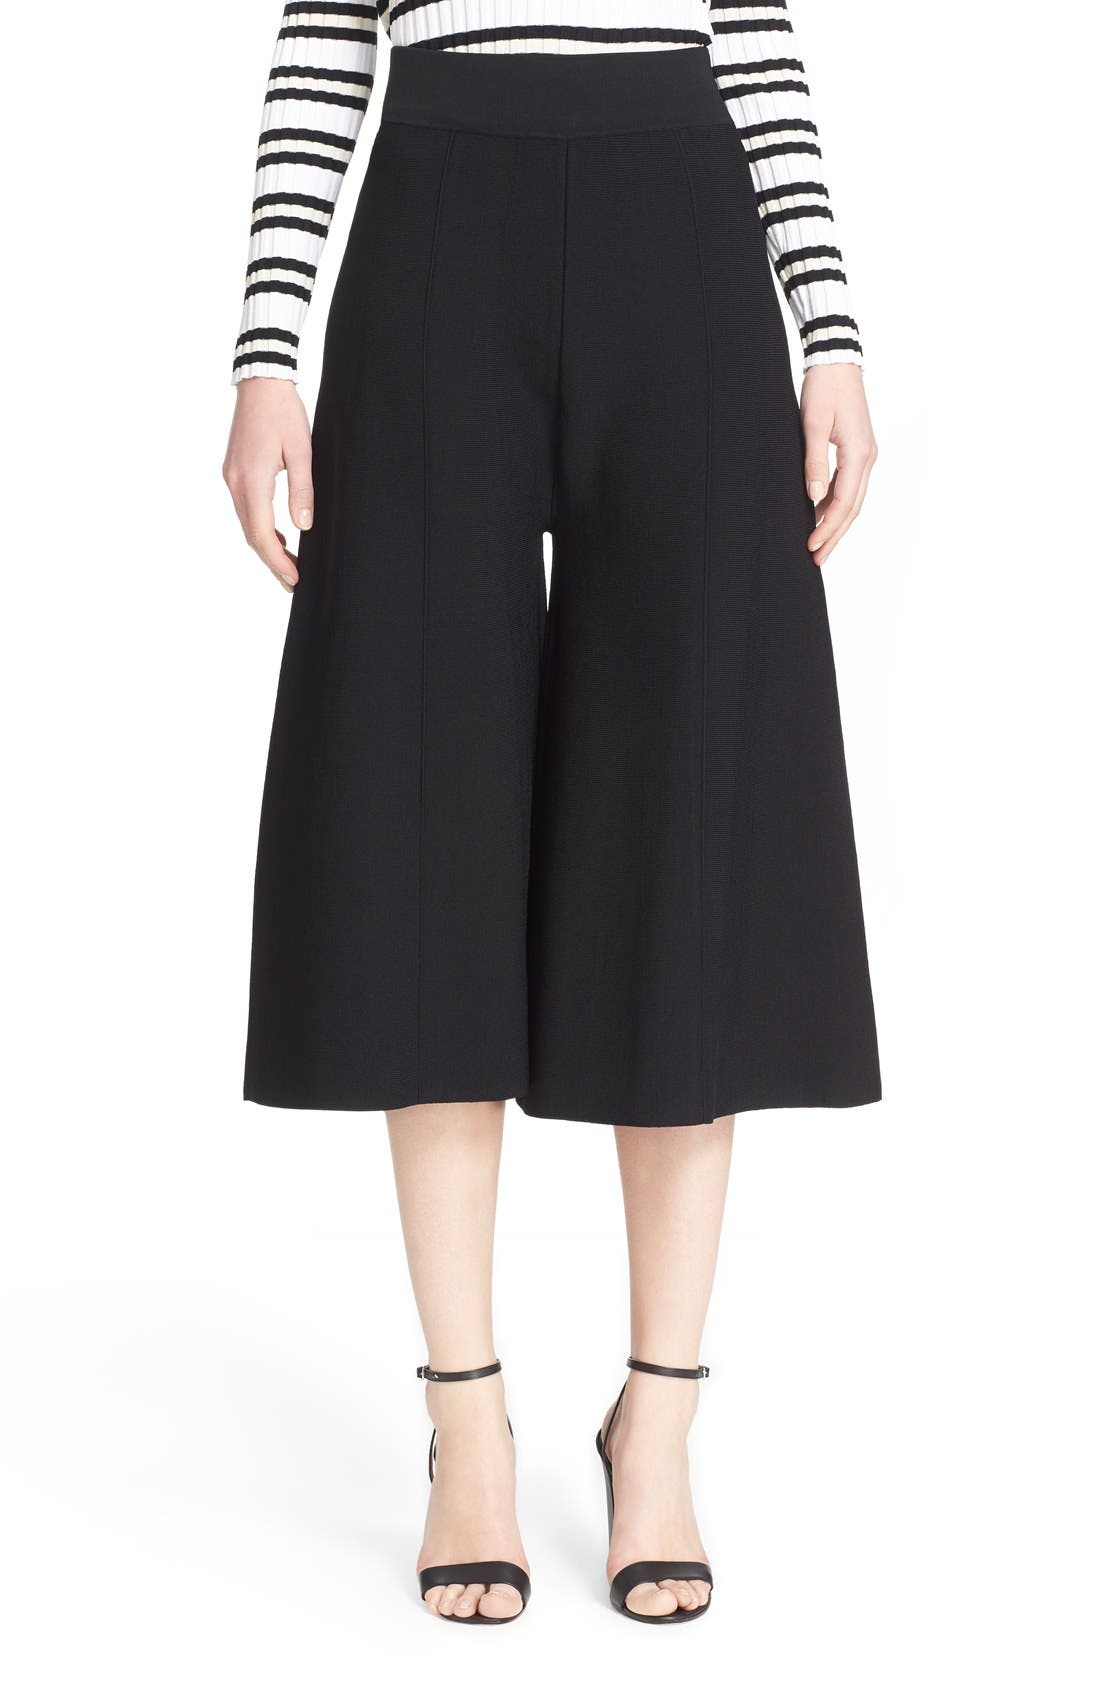 MILLY Knit Culottes, Main, color, 001